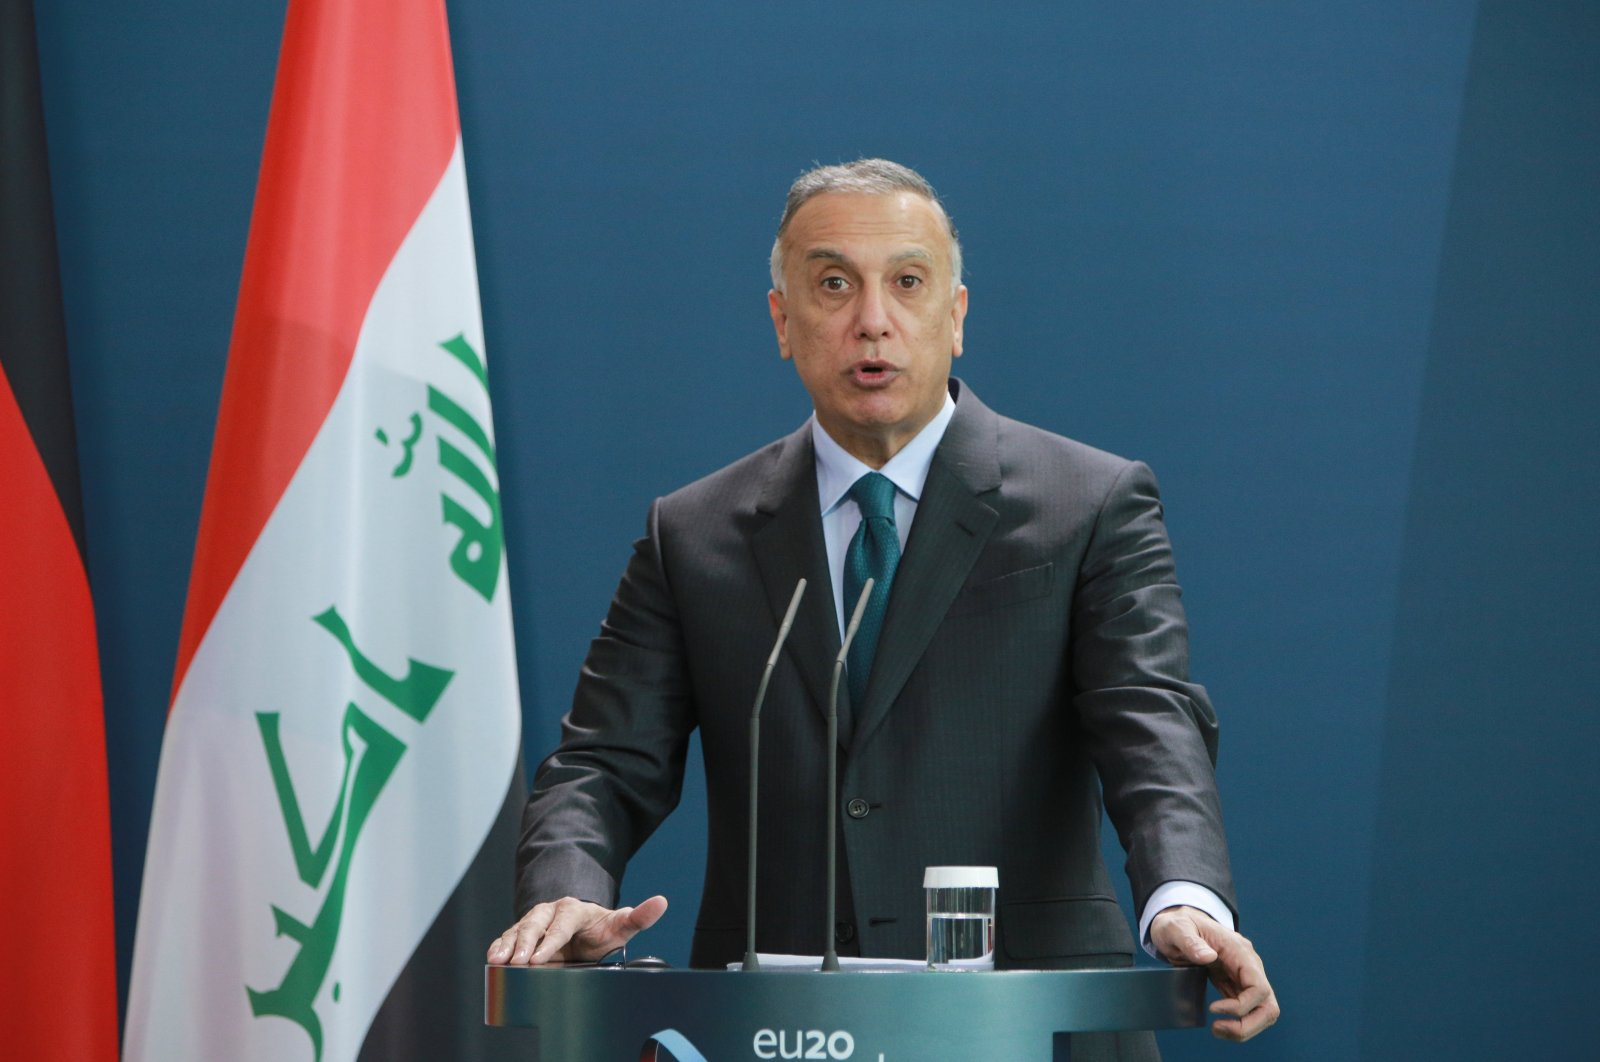 Iraqi Prime Minister Mustafa al-Kadhimi speaks to the media during a press conference with German Chancellor Angela Merkel at the Chancellery in Berlin, Germany, Oct. 20, 2020. (Getty Images)